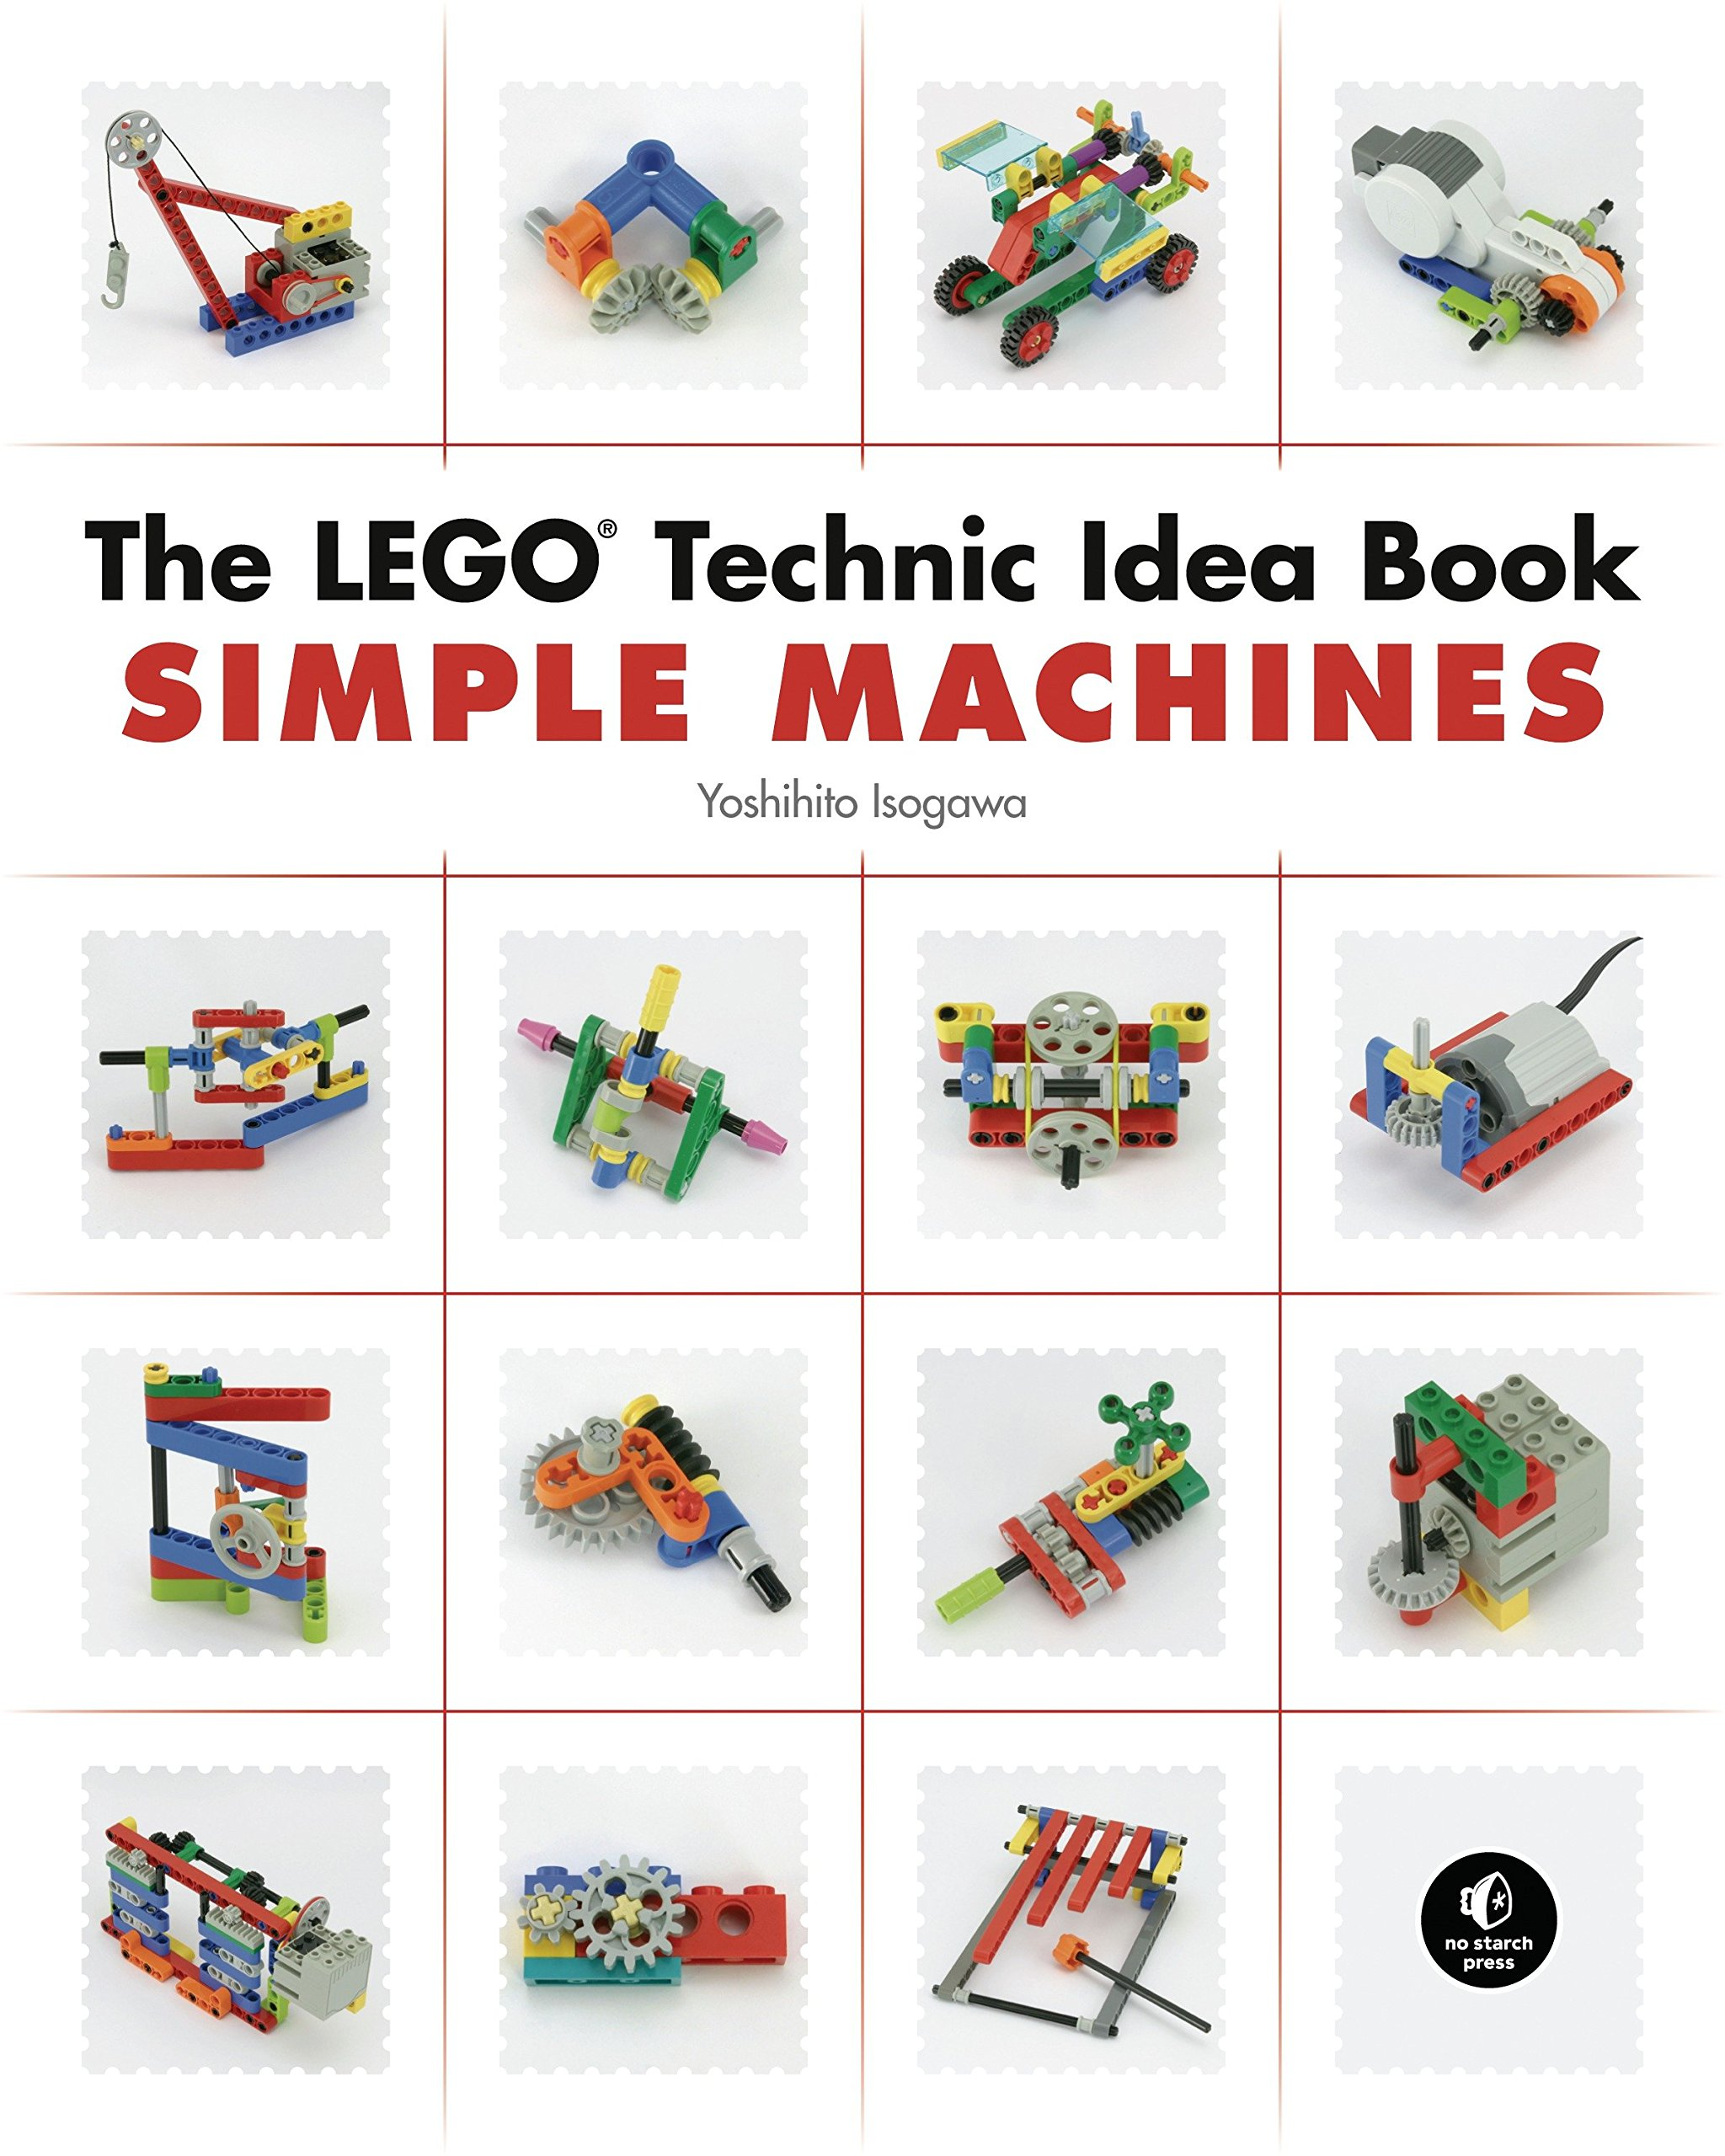 amazon the lego technic idea book simple machines yoshihito